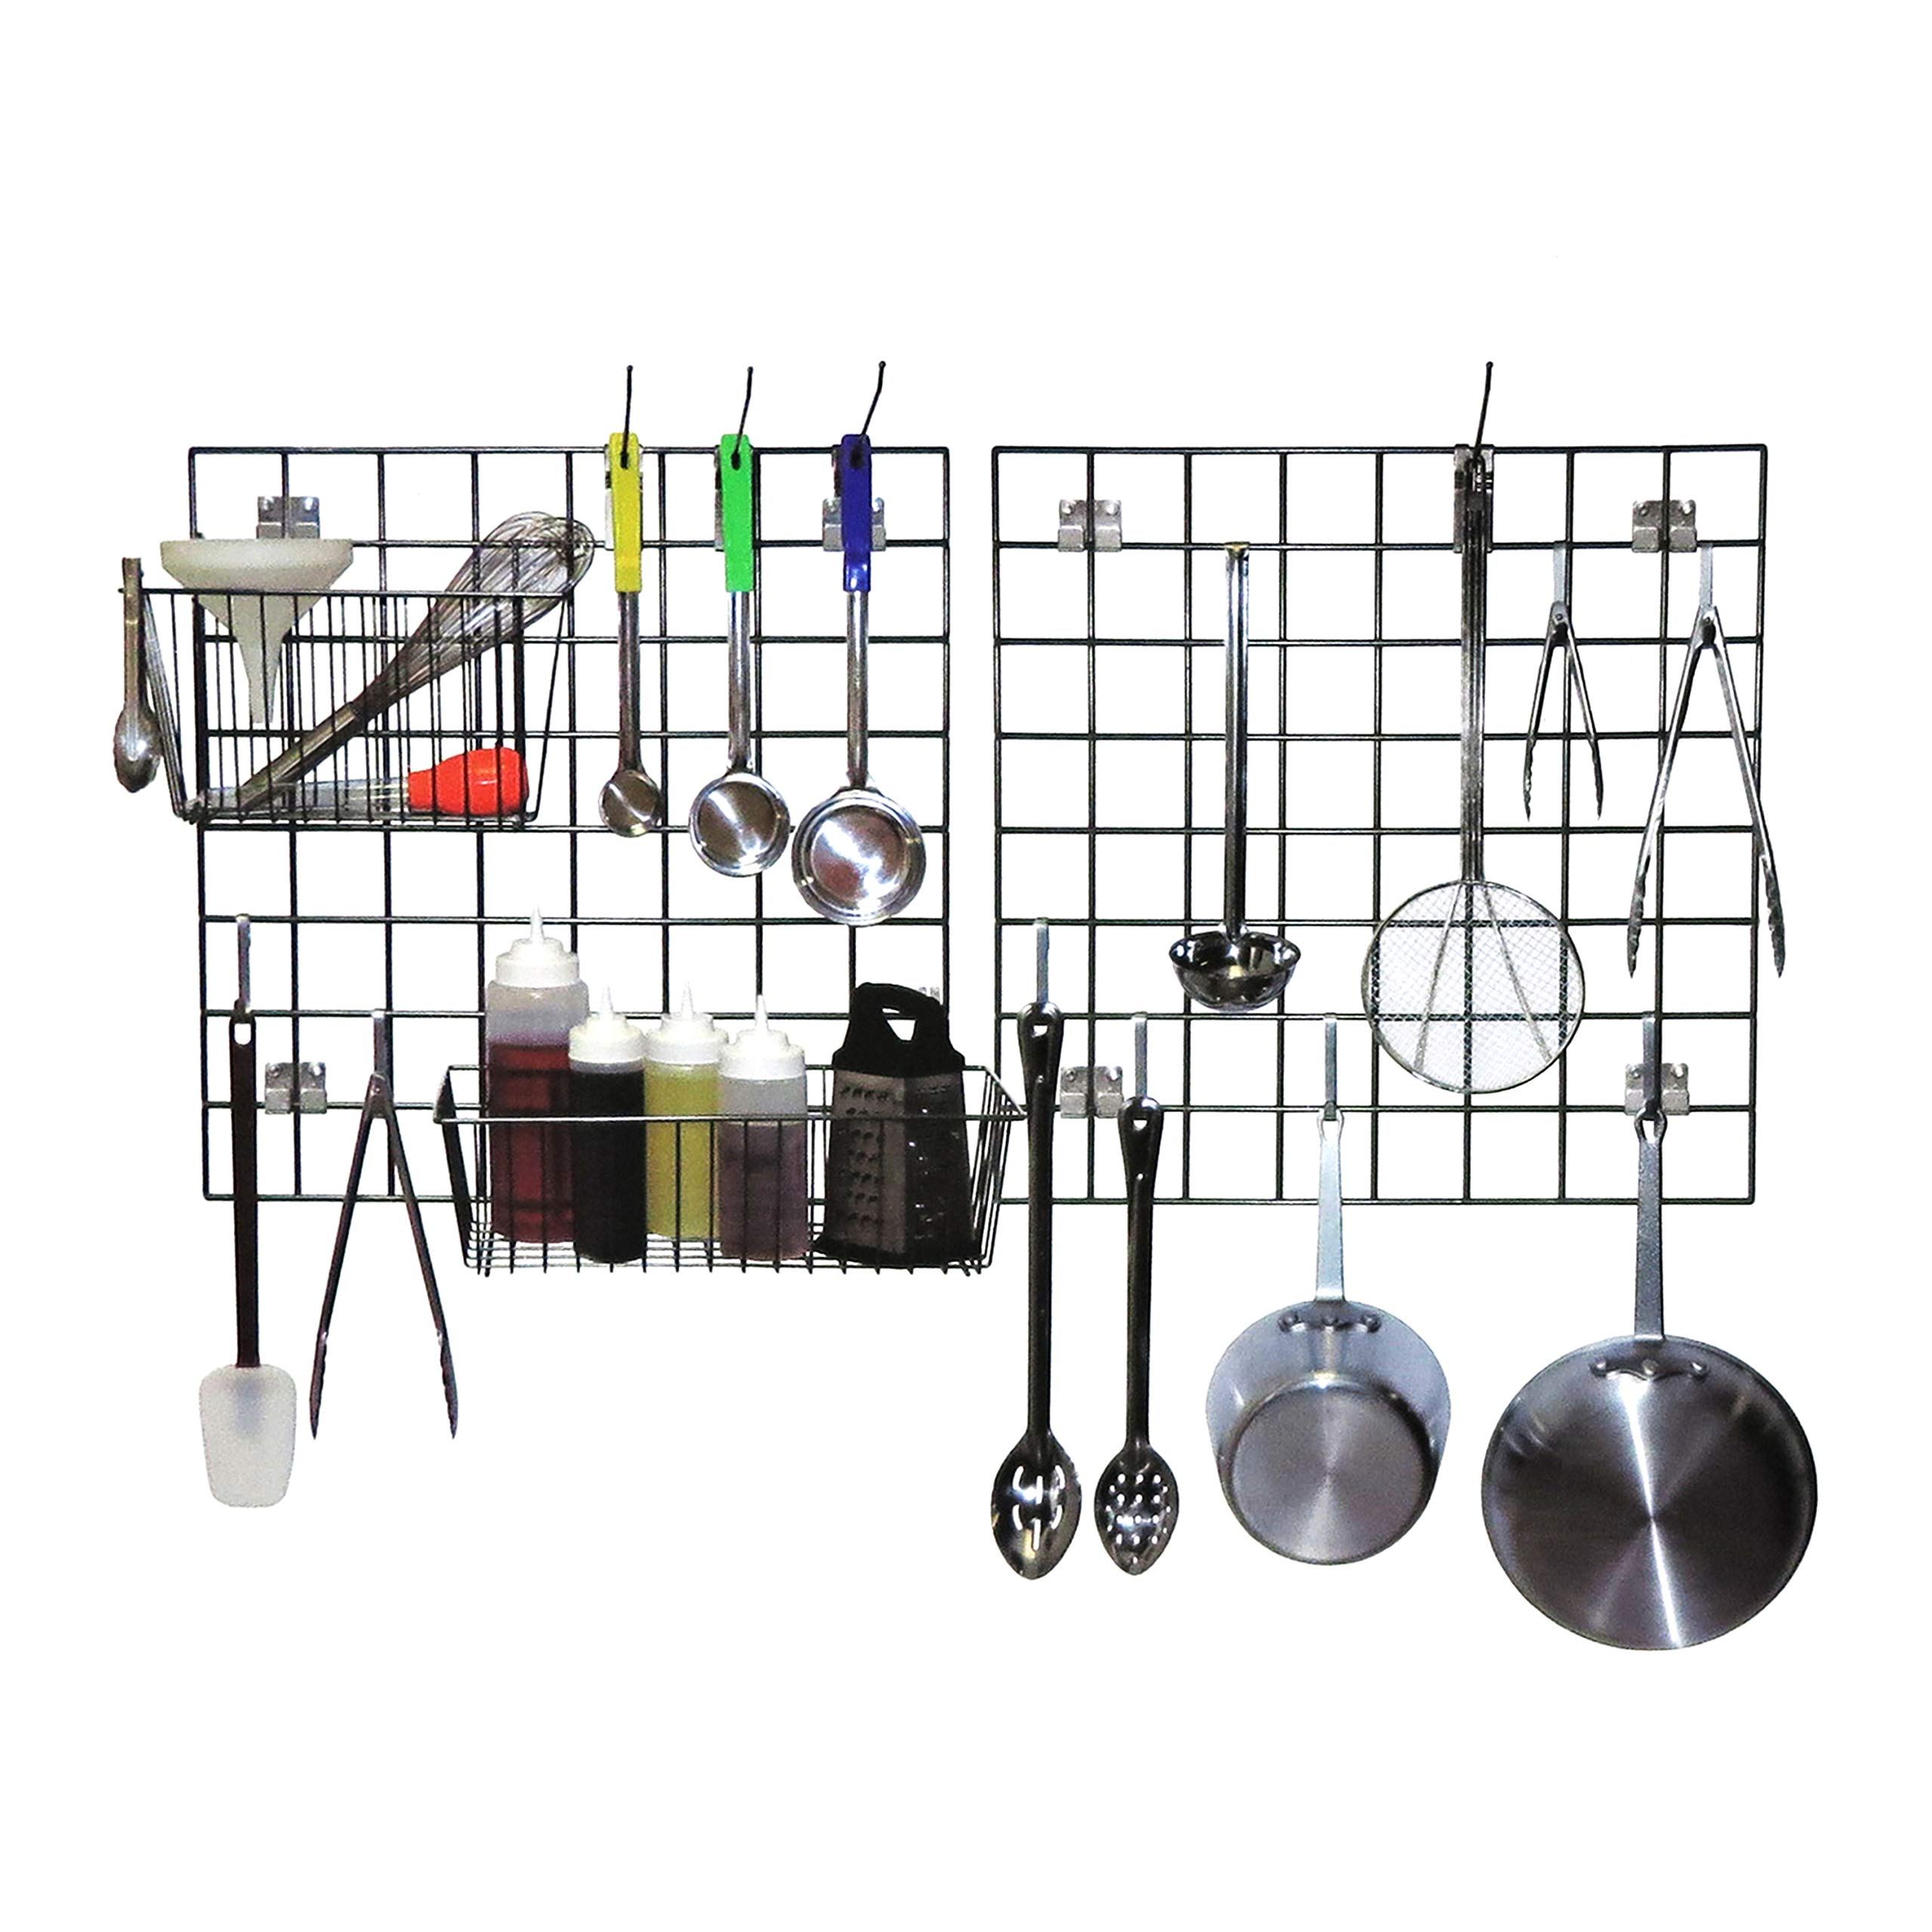 Premium Wall Mounted Food Prep and Drying Kit For Restaurants and Kitchens - Keep Your Culinary Supplies Organized by Vision